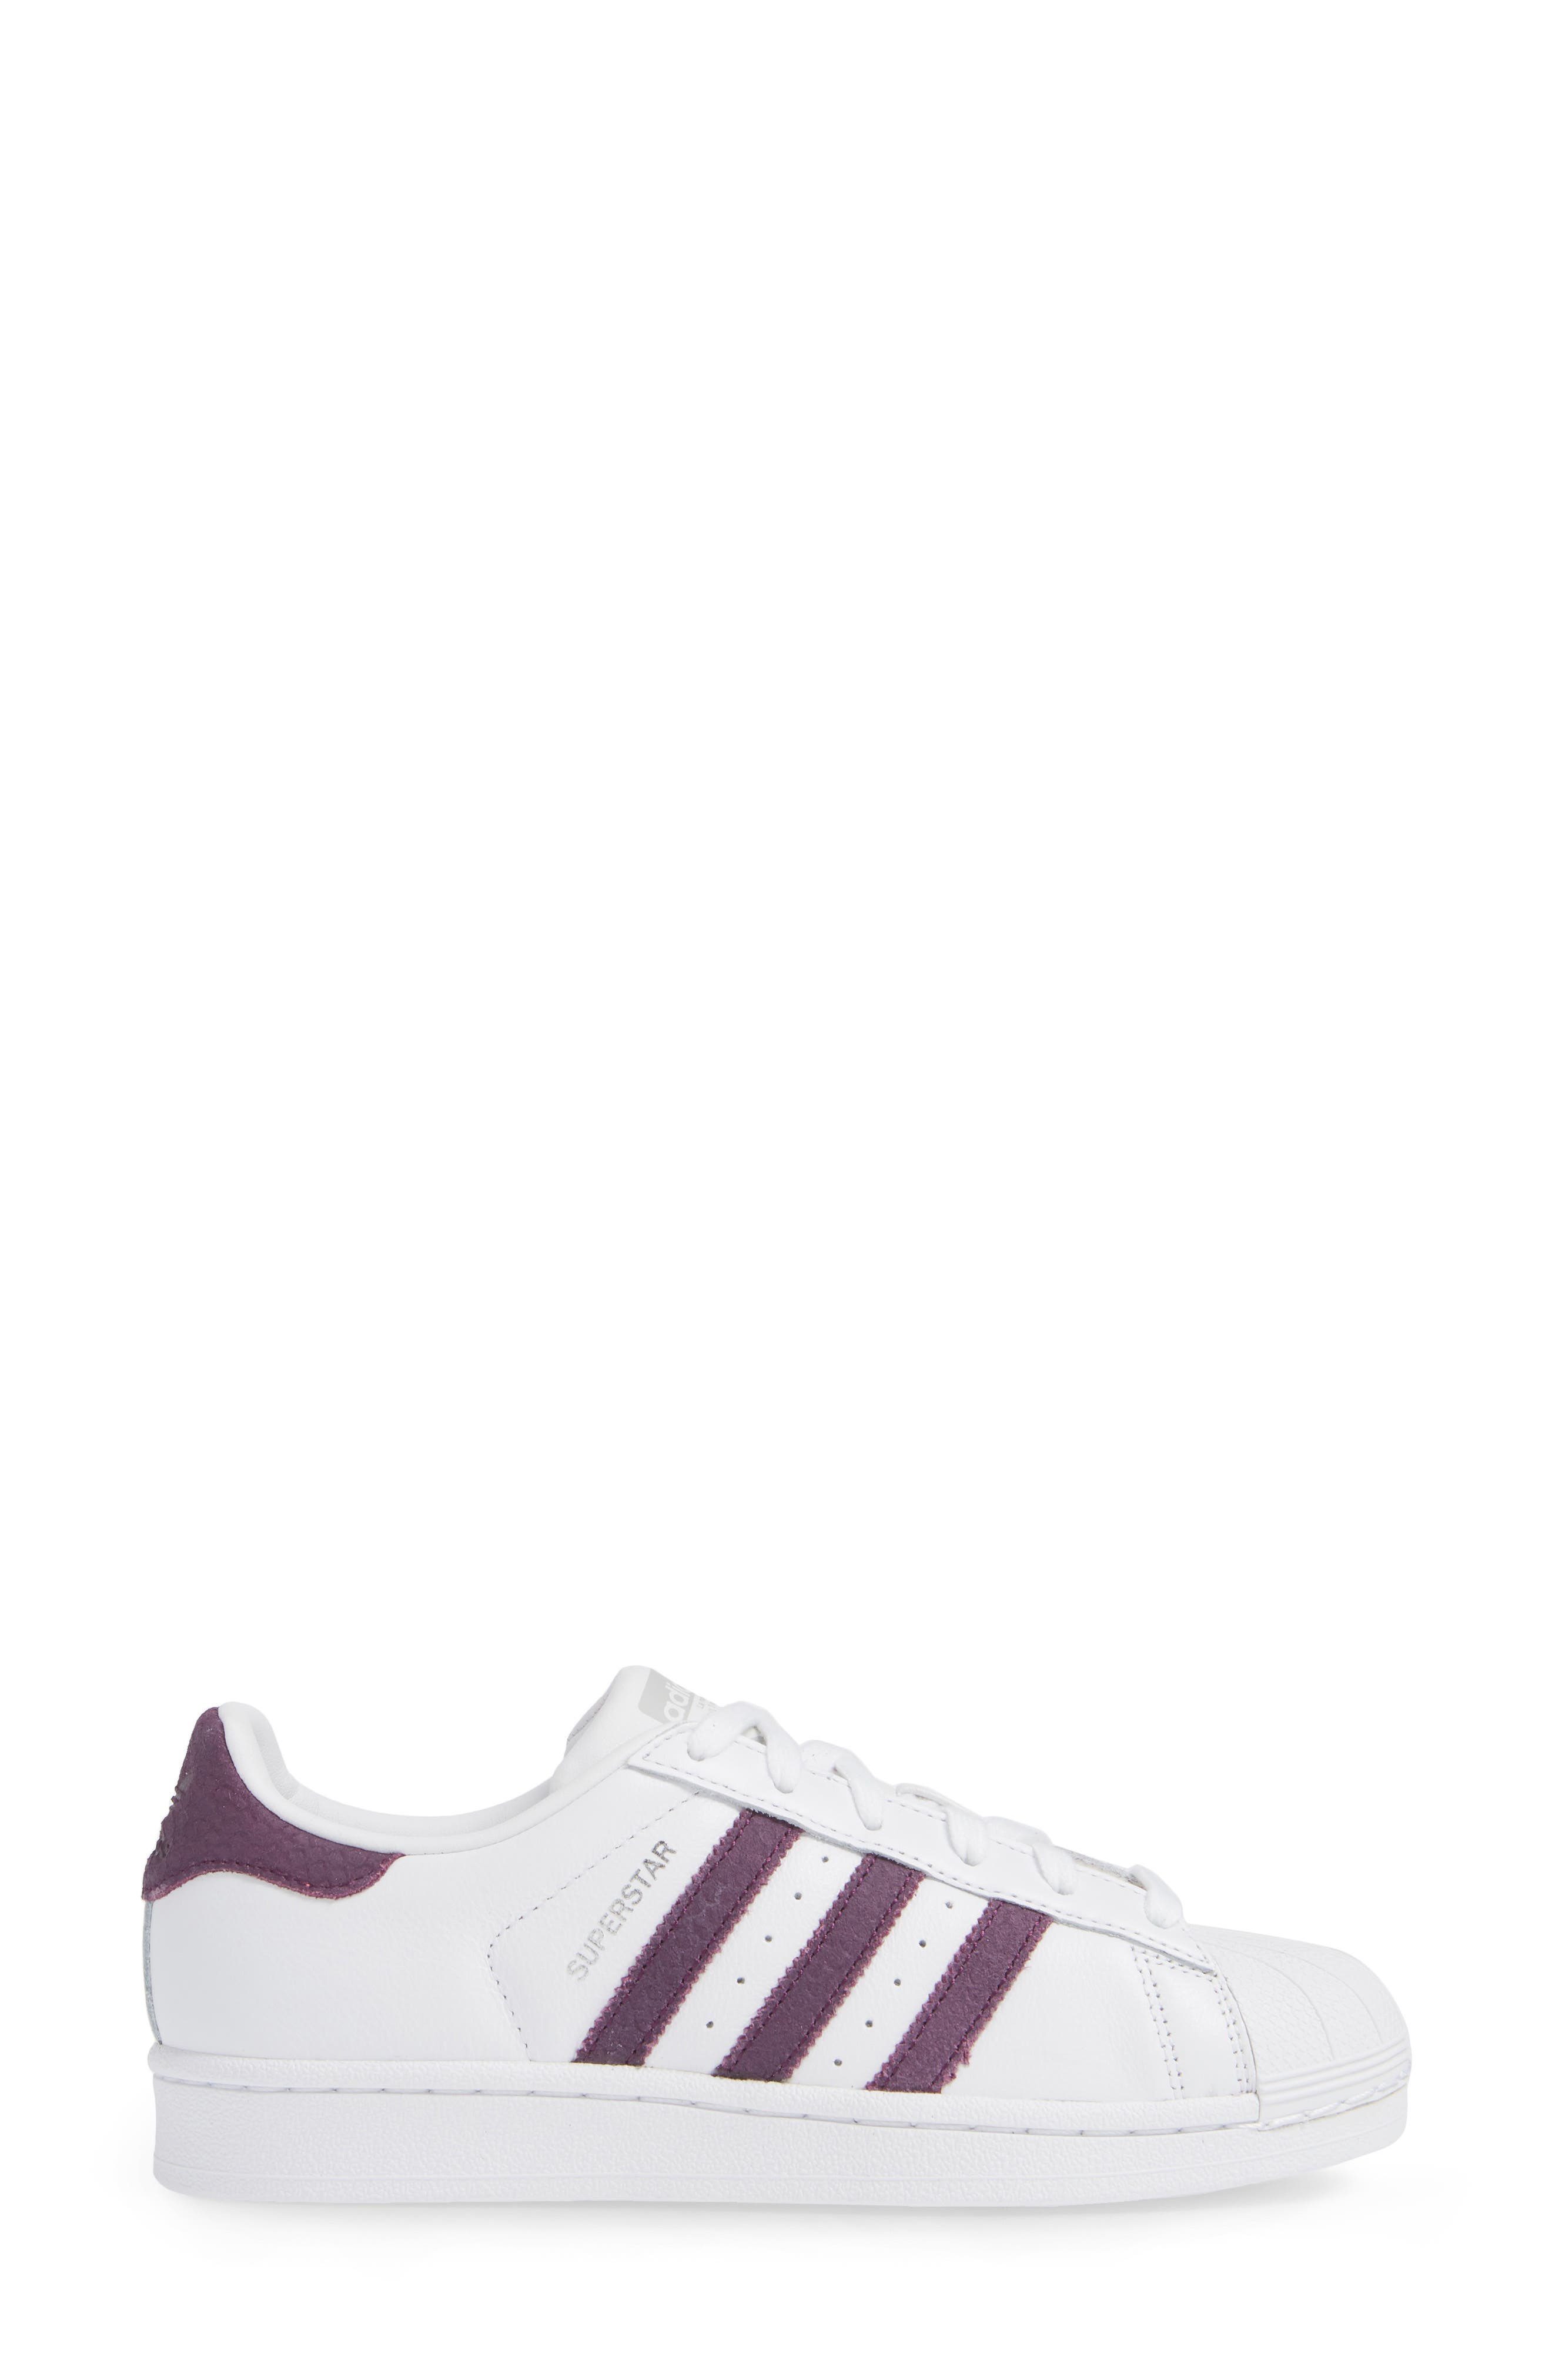 Superstar Sneaker,                             Alternate thumbnail 3, color,                             WHITE/ RED NIGHT/ SILVER